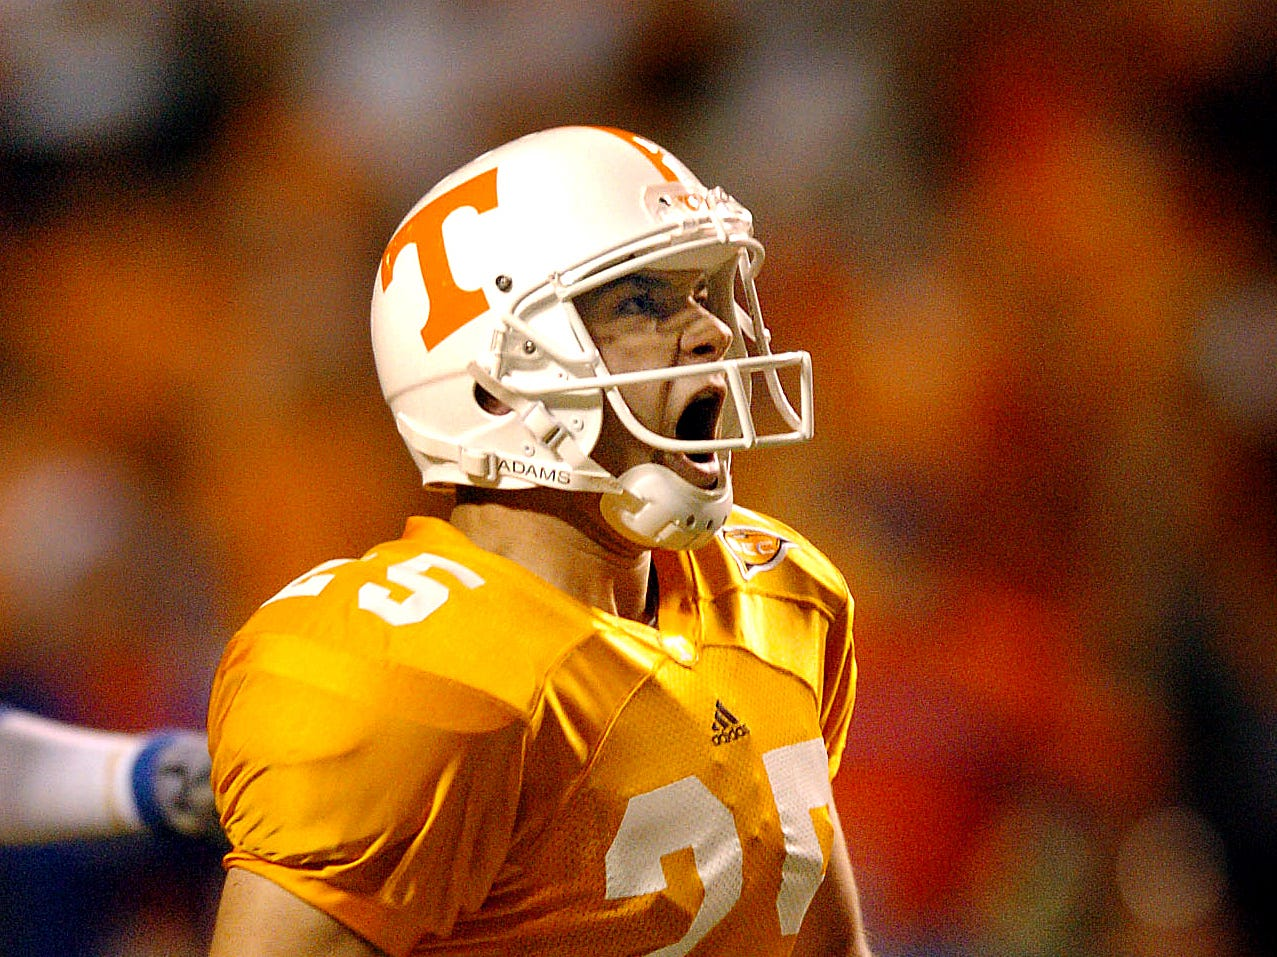 Tennessee's (25) James Wilhoit reacts the instant he sees that his 50-yard field goal kick was good for the winning point Saturday night to beat Florida 30-28.  9/18/2004